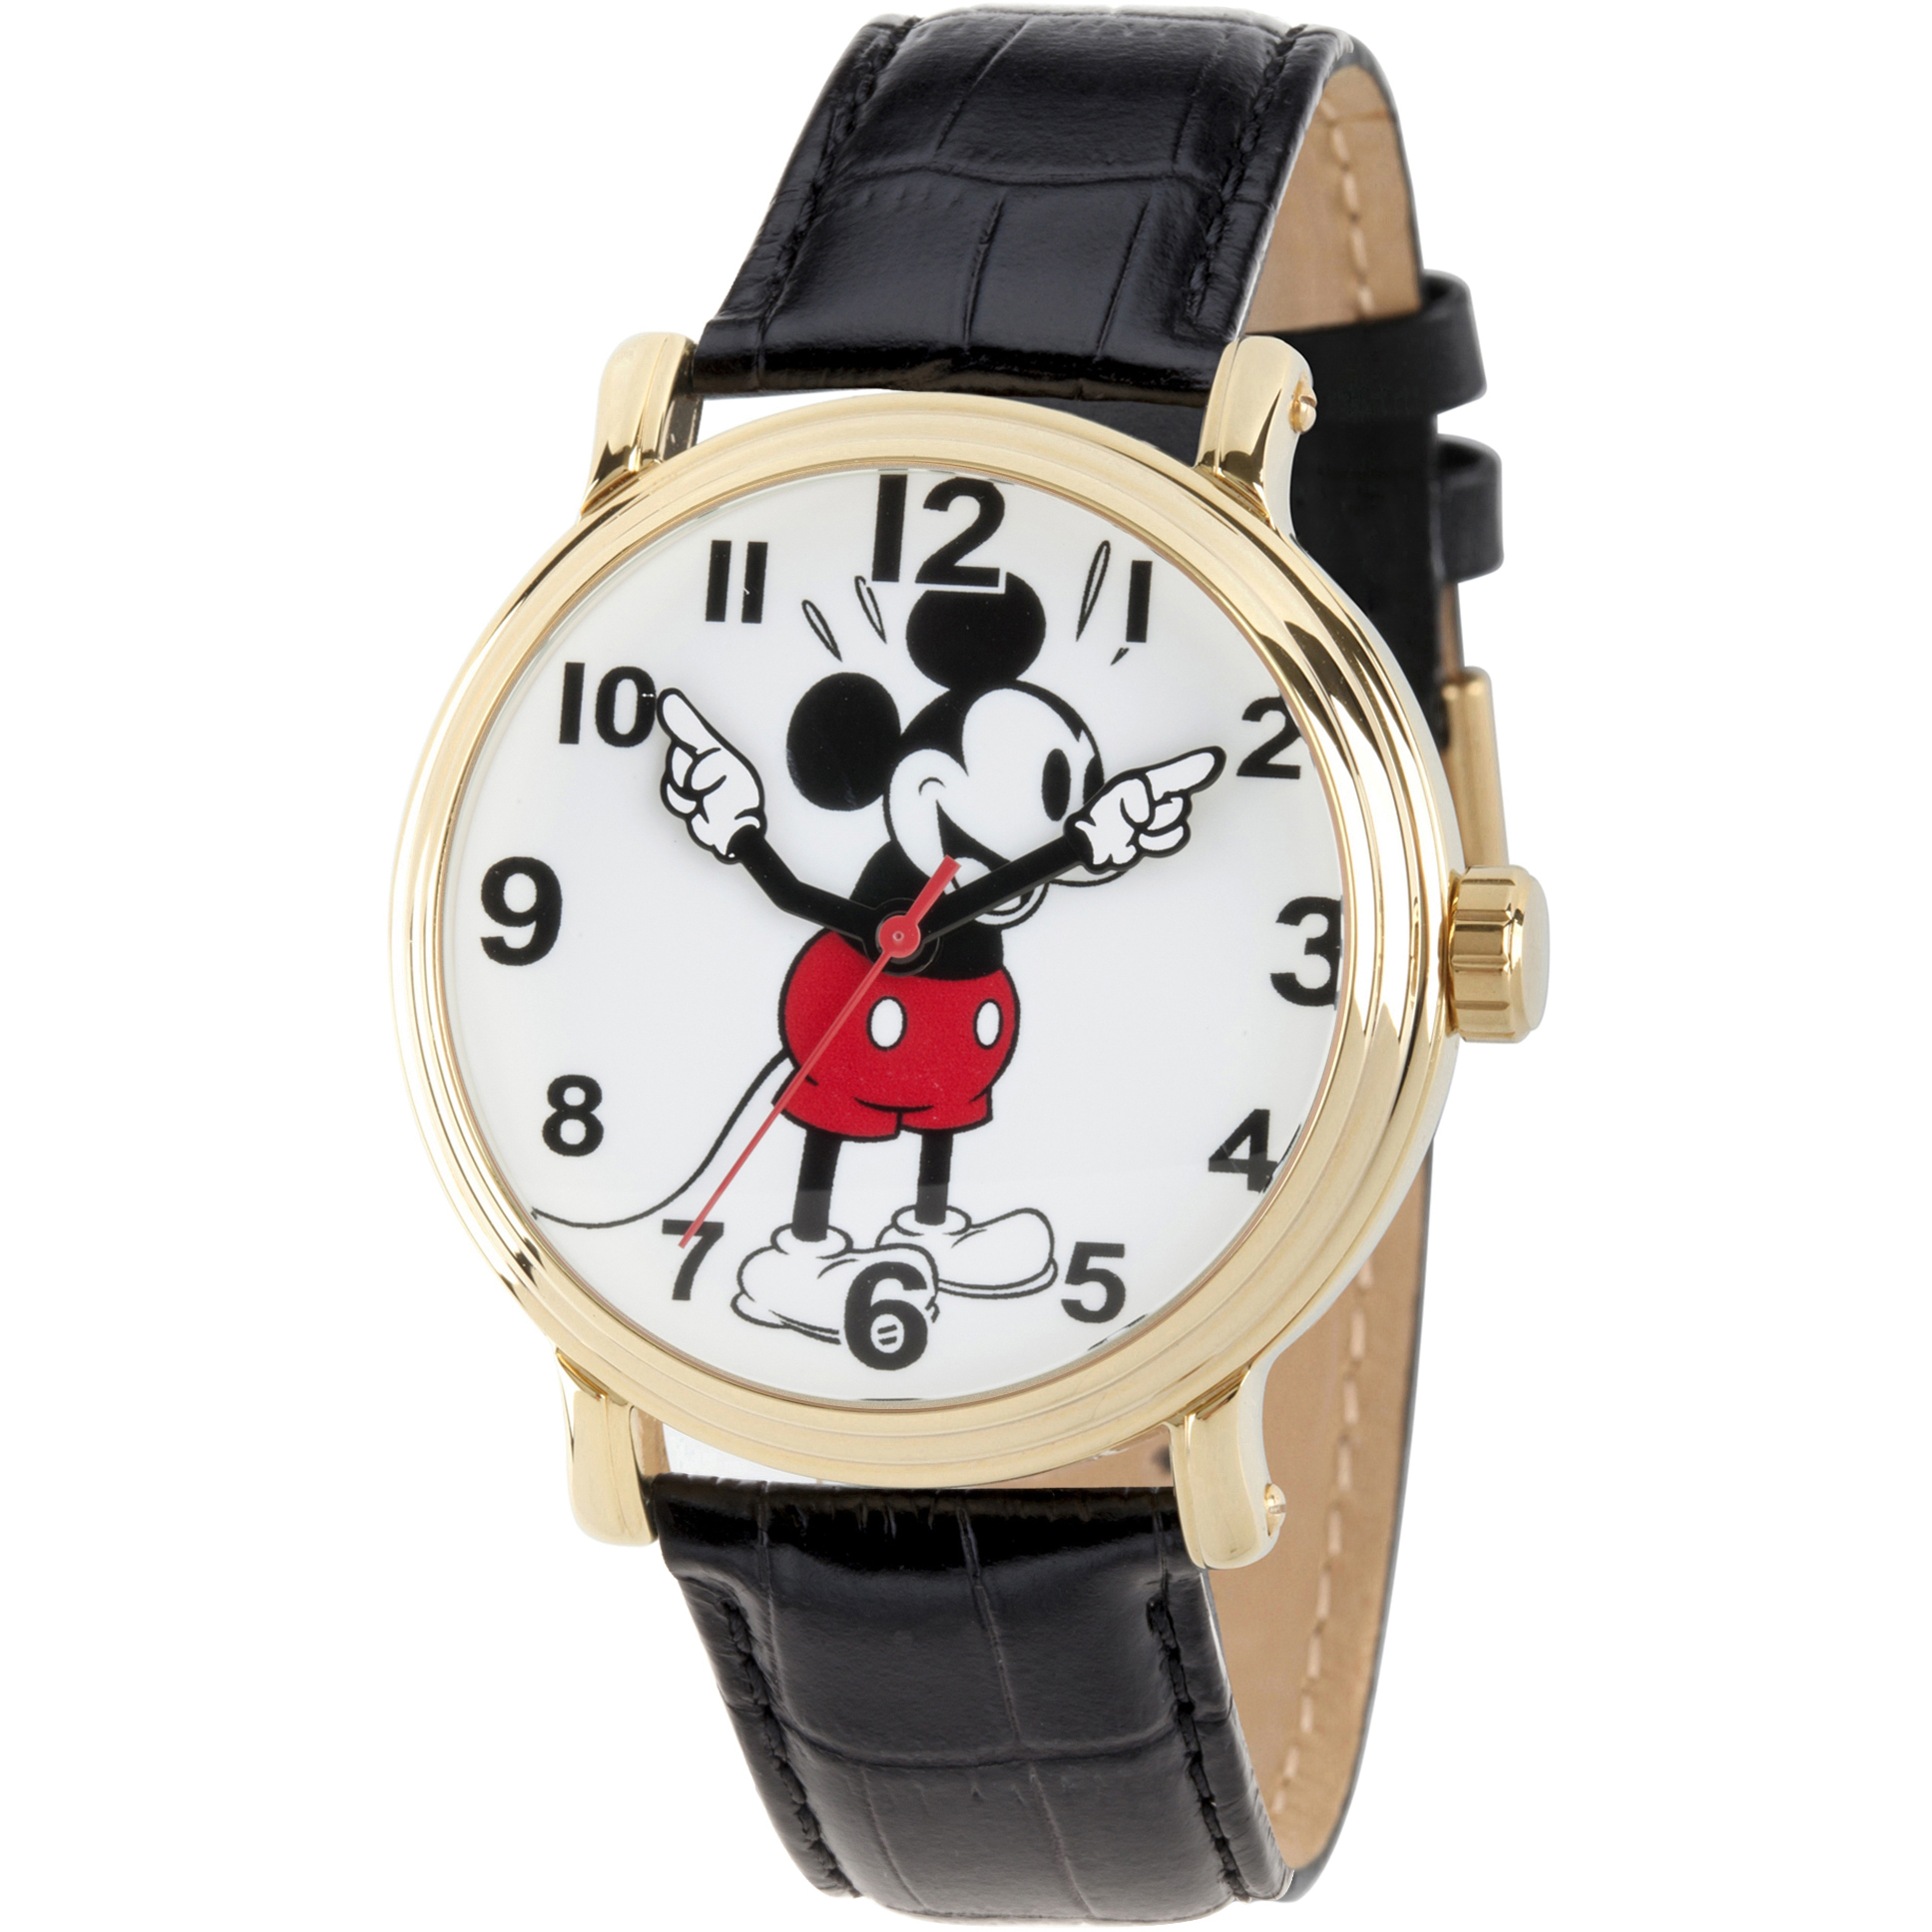 Mickey Mouse Men's Gold Vintage Alloy Watch, Black Leather Strap